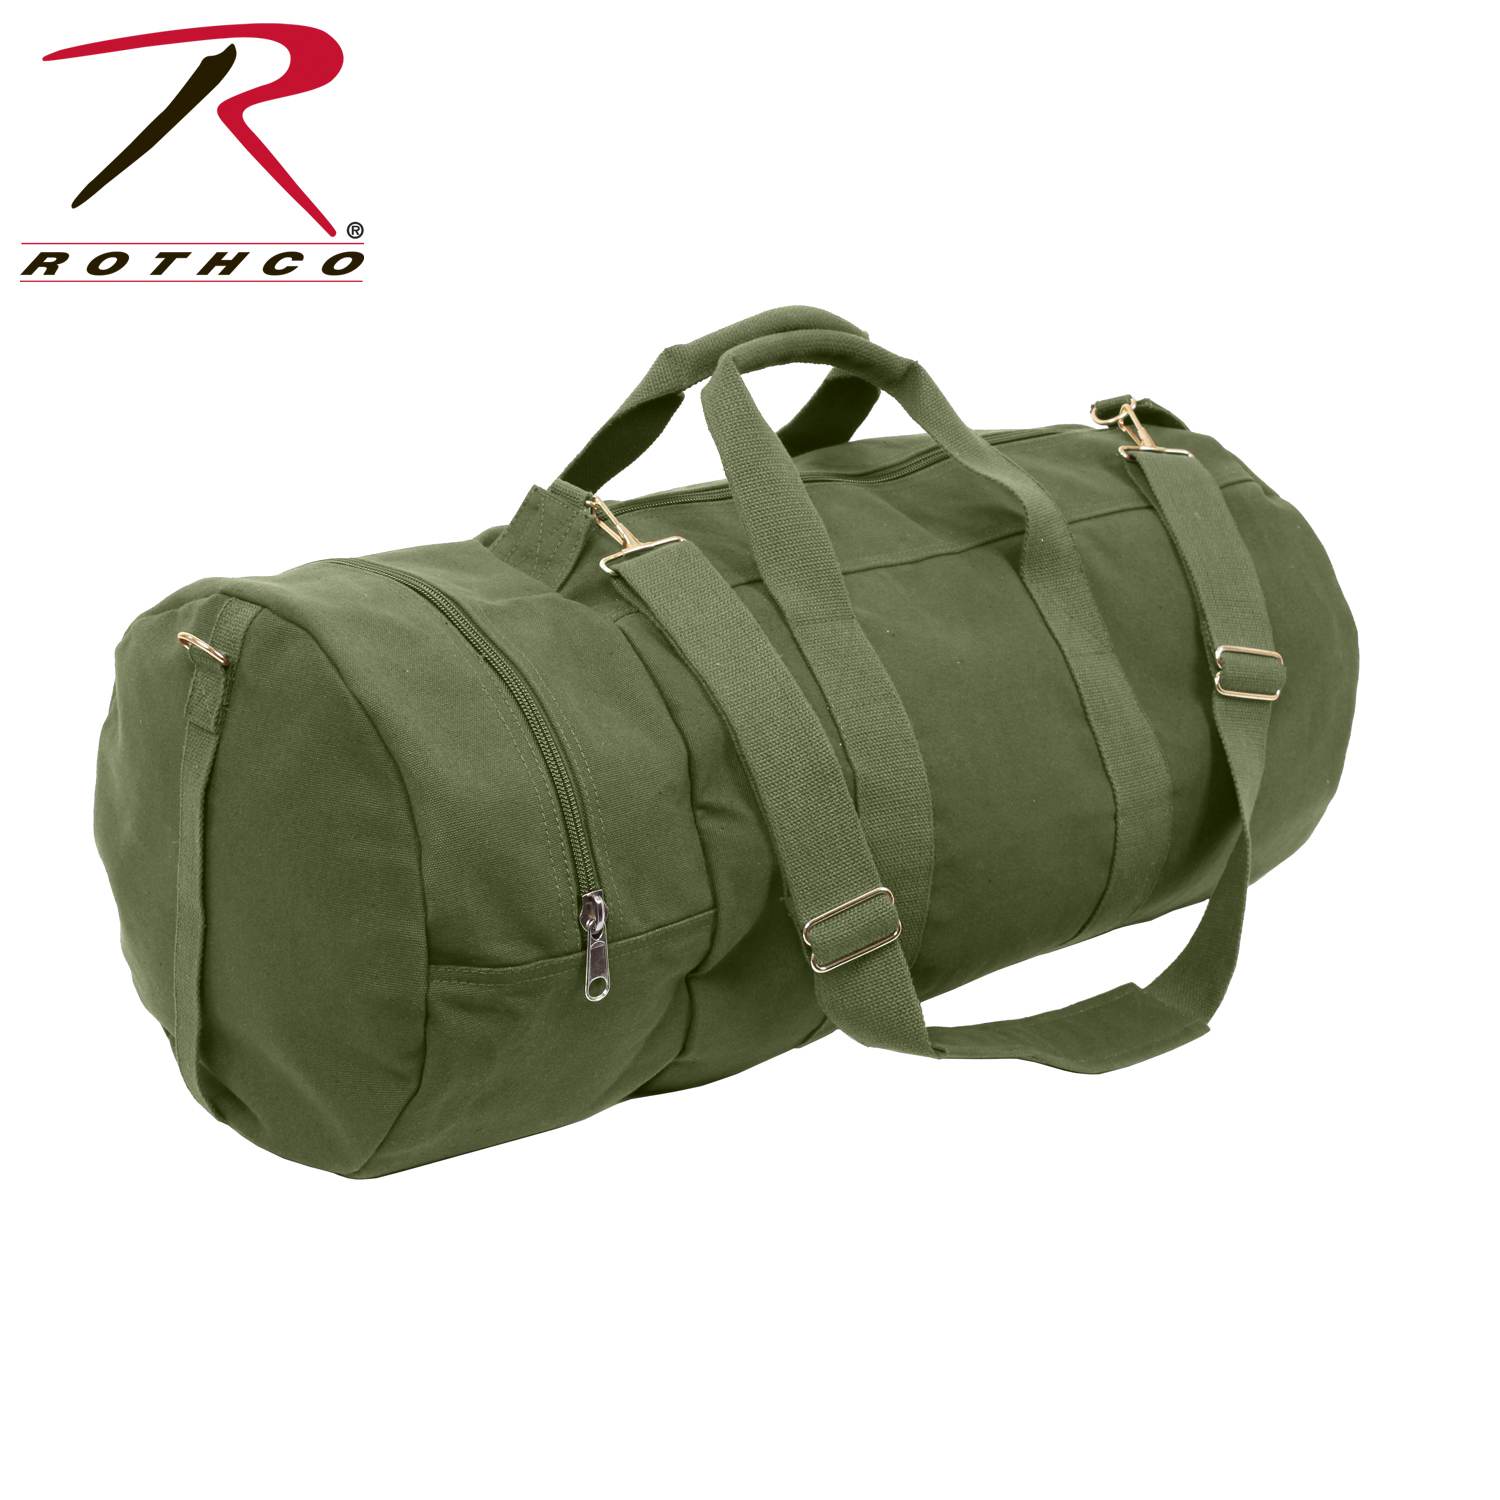 Rothco Canvas Double Ender Sports Bag